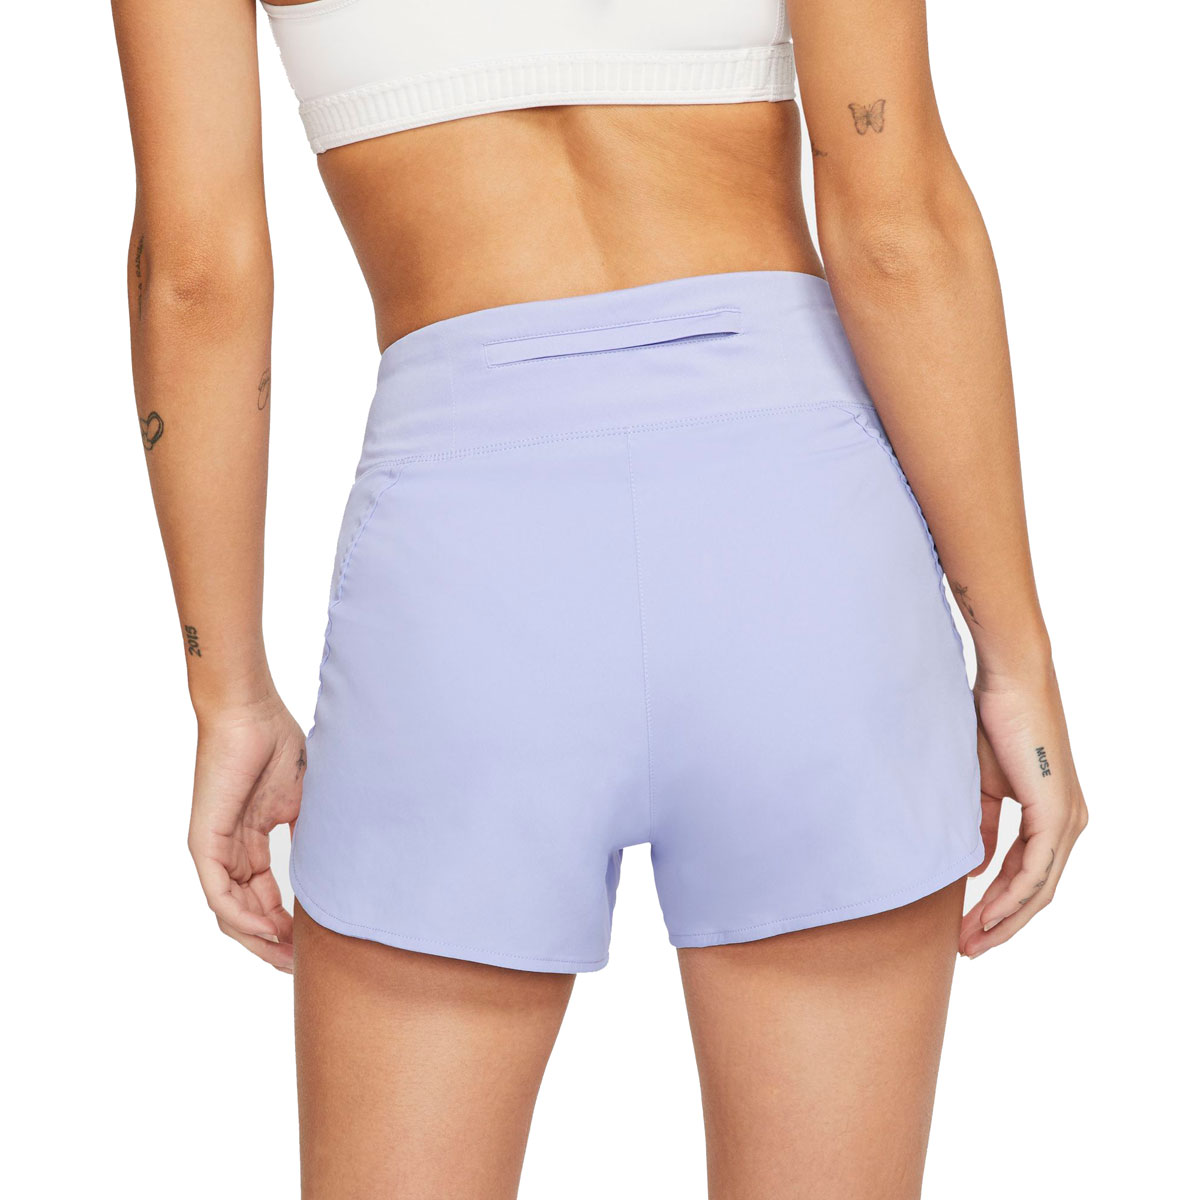 "Women's Nike Eclipse 3"" Running Shorts - Color: Light Thistle/Reflective Silver - Size: XS, Light Thistle/Reflective Silver, large, image 2"